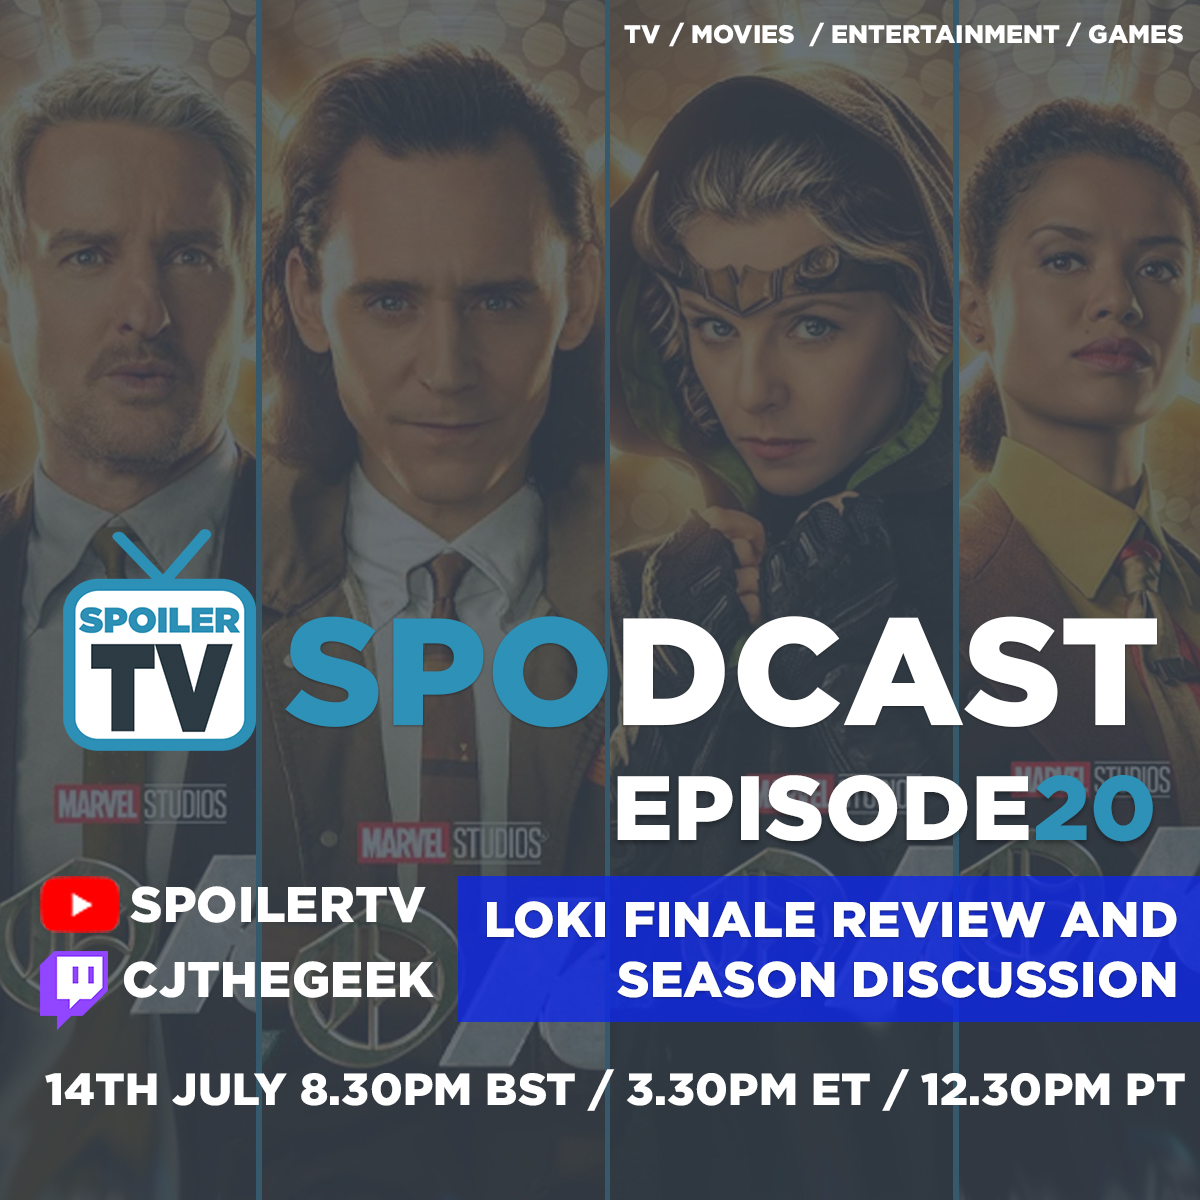 Loki Finale Review and Season Discussion - SpoilerTV Spodcast 20